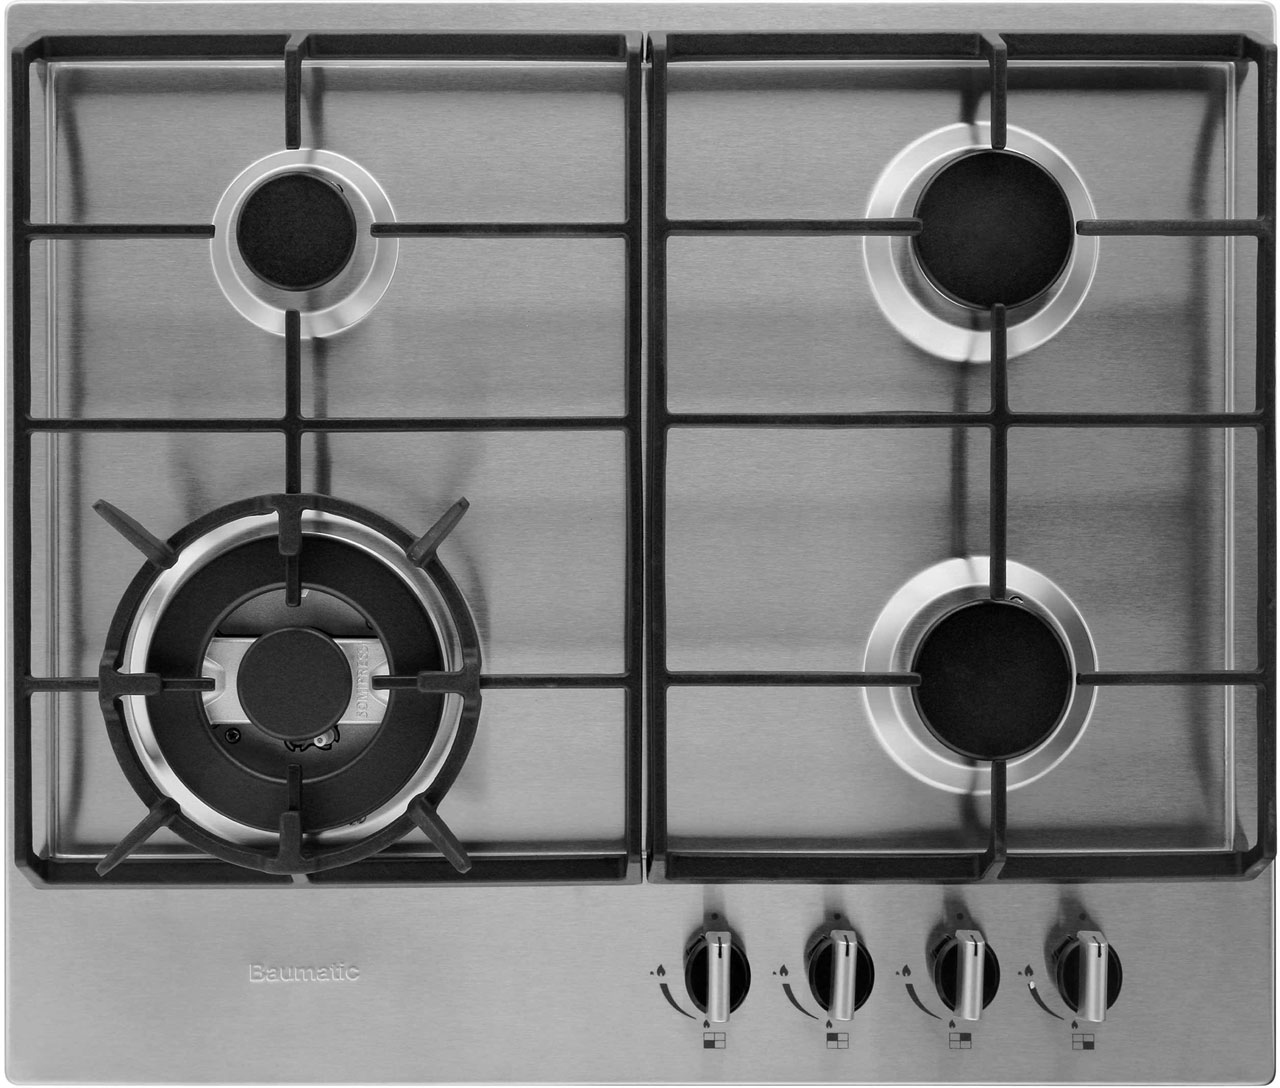 Small gas hob cleaned by Ultra Clean Ovens from £20